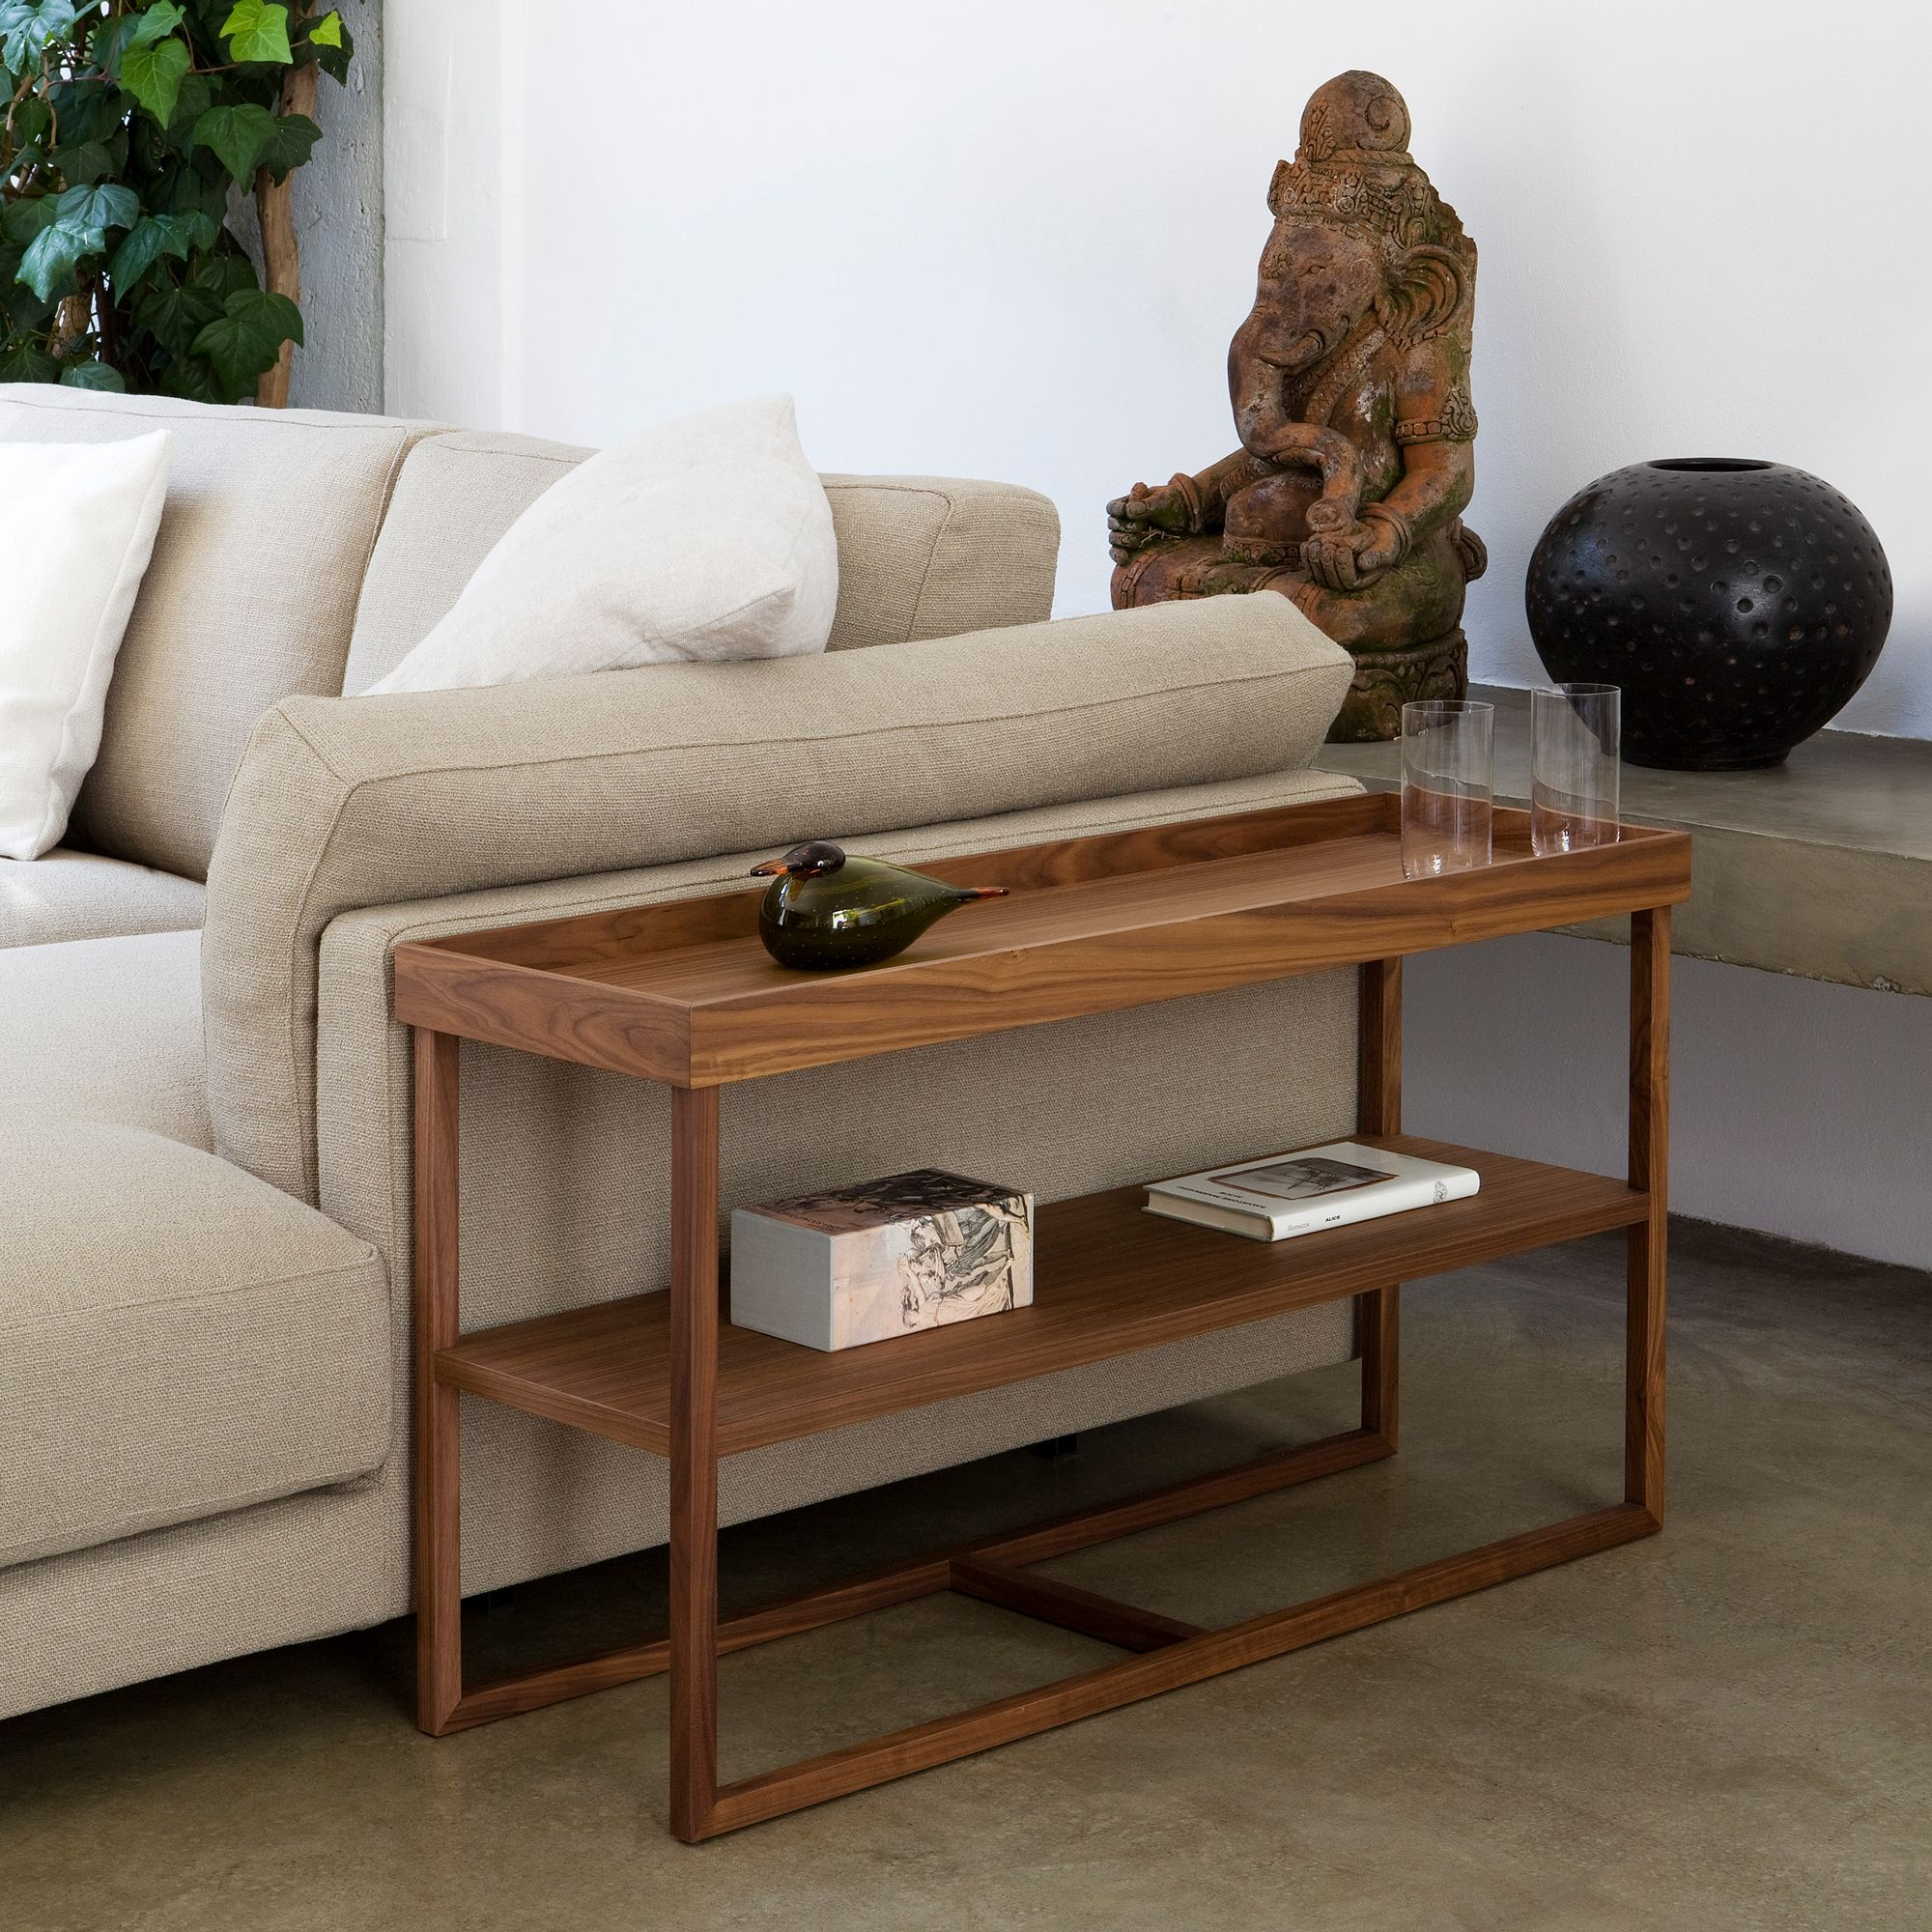 Italian Designer Match Side Table Luxury Swa Should Coffee End Tables Dark Wood Ikea Industrial Round Home Goods Lamps Dinette Sets Modern Sofa Table Top Sofas [ 2000 x 2000 Pixel ]